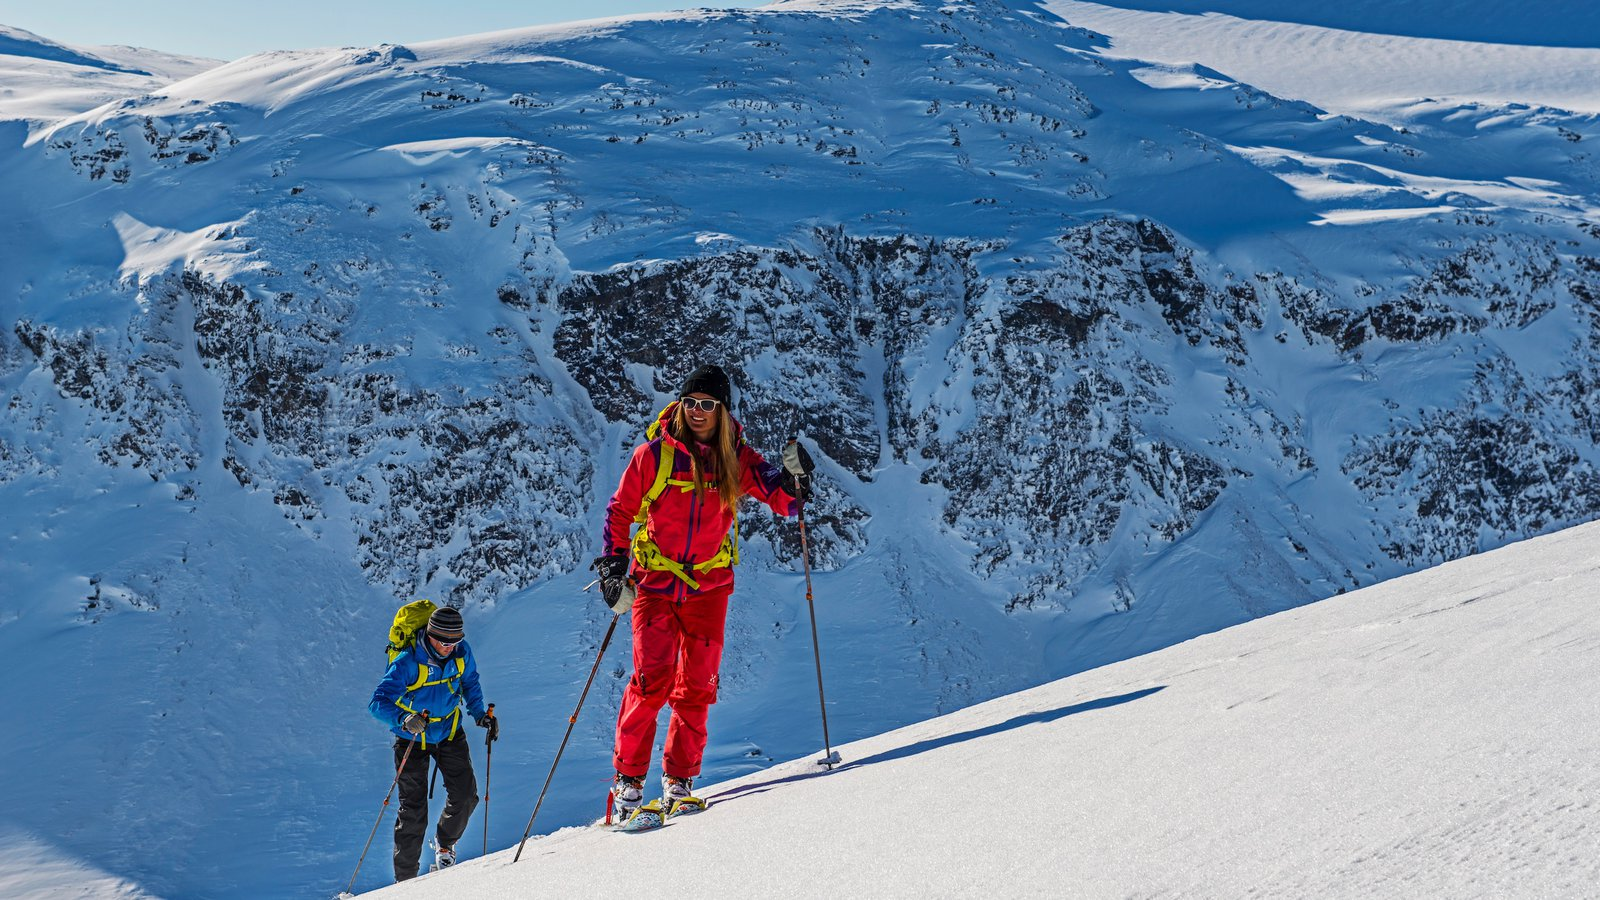 Bjorkliden Fjallby Ski Resort which includes mountains, snow and snow skiing